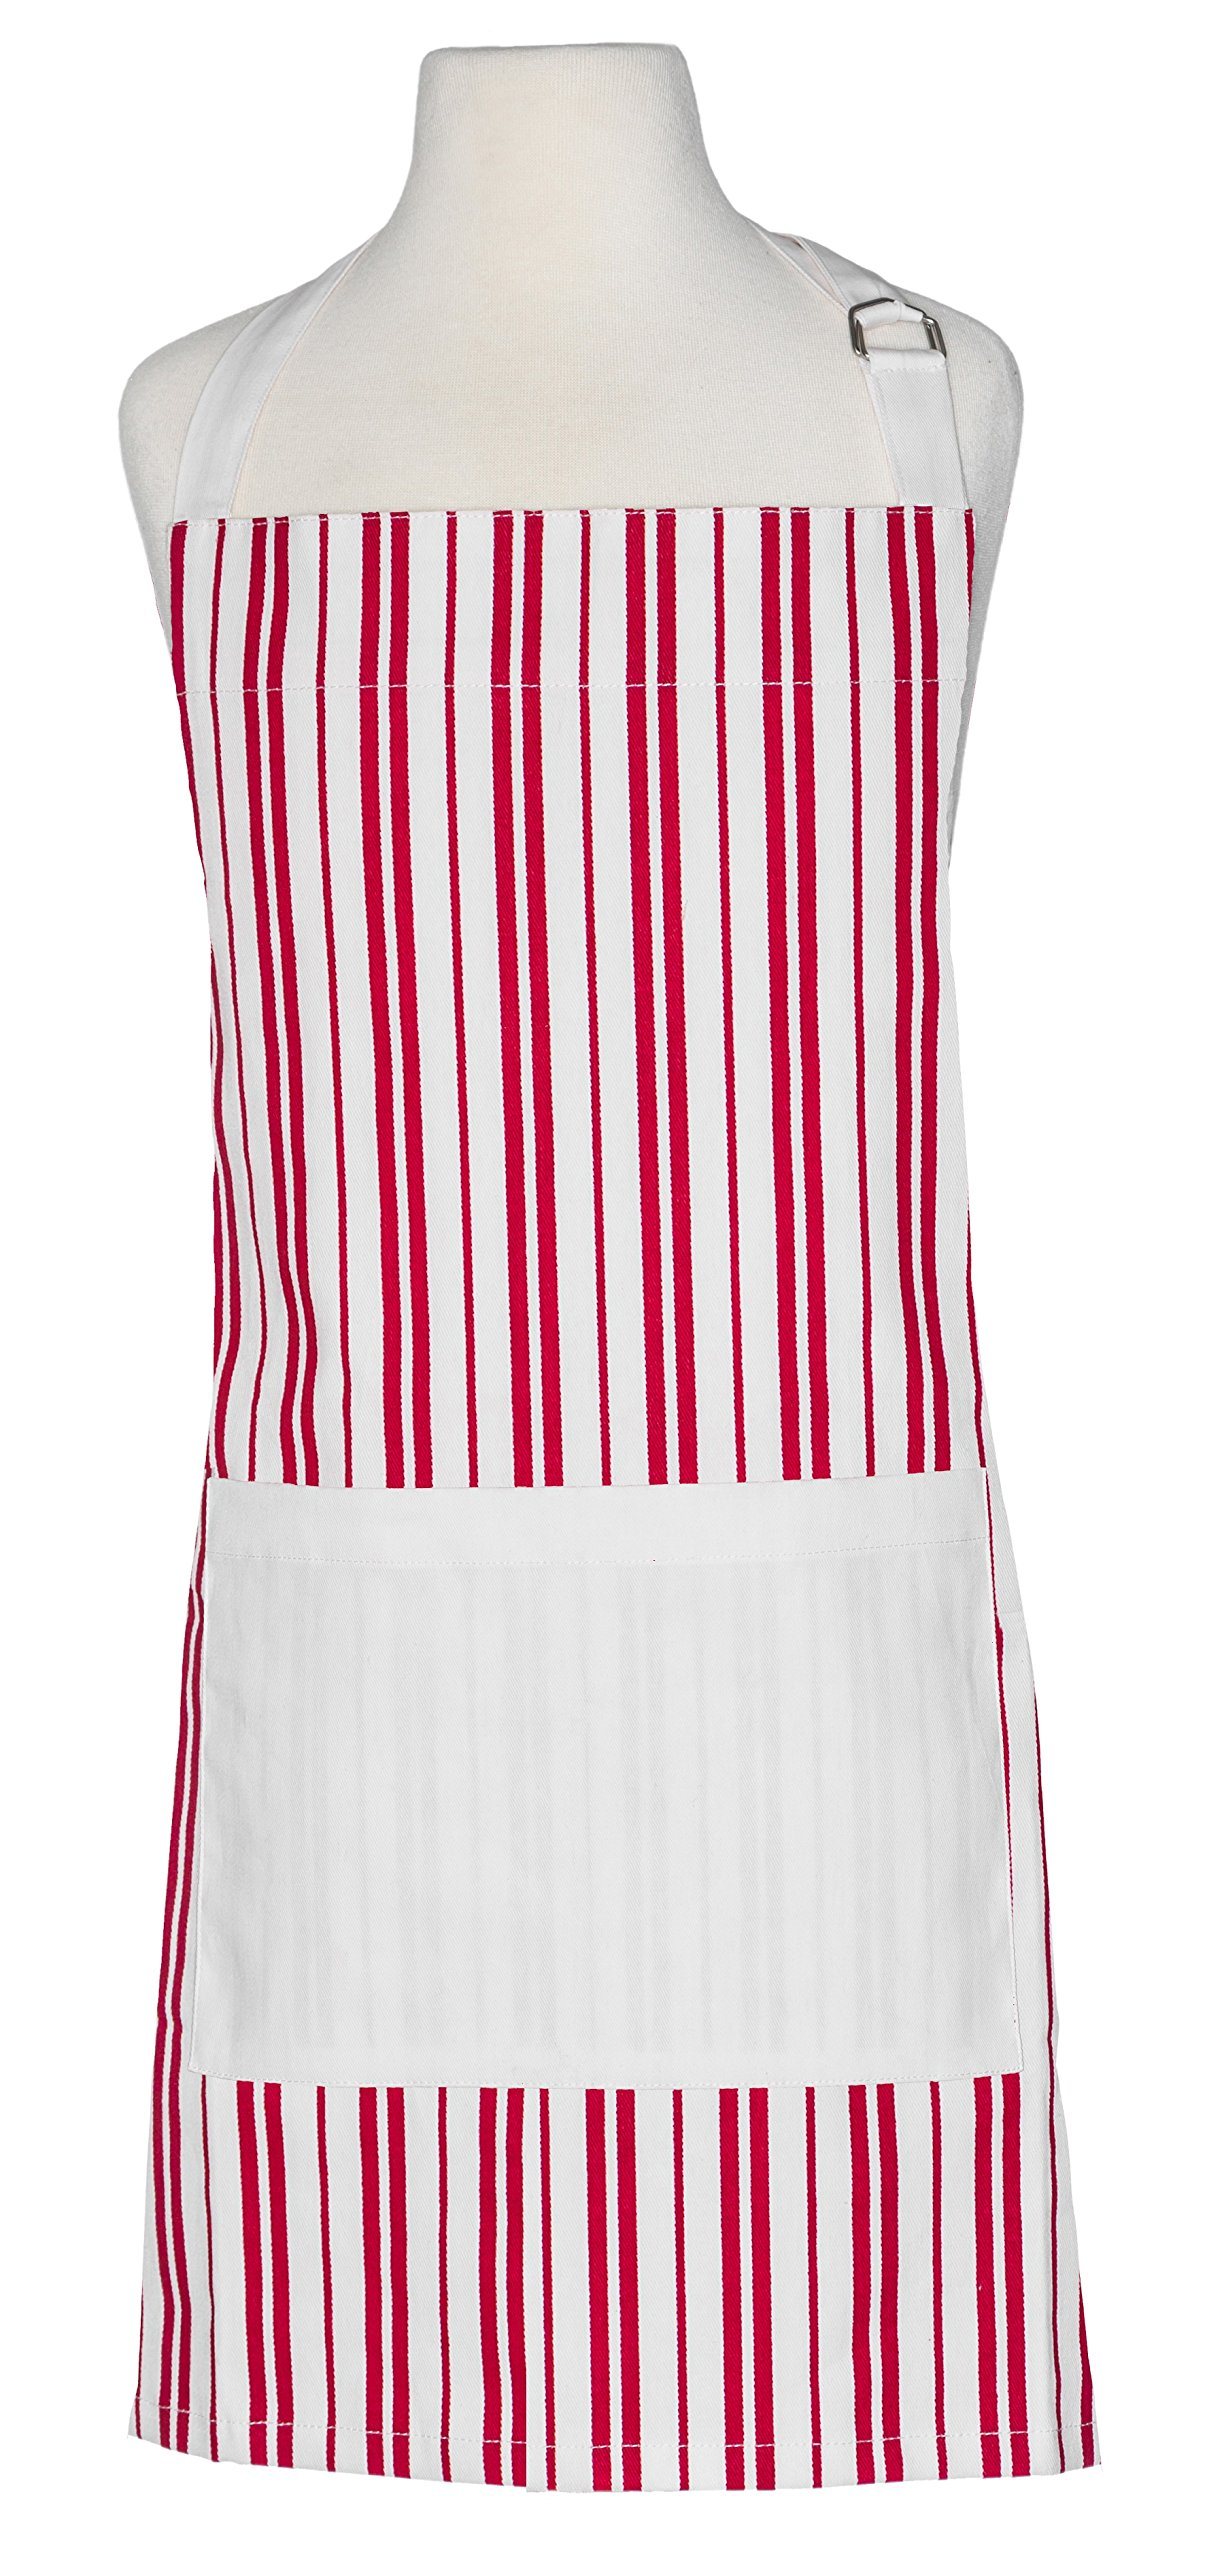 Handstand Kitchen Child's 100% Cotton Classic Red Stripe Apron with Wide Double Pocket